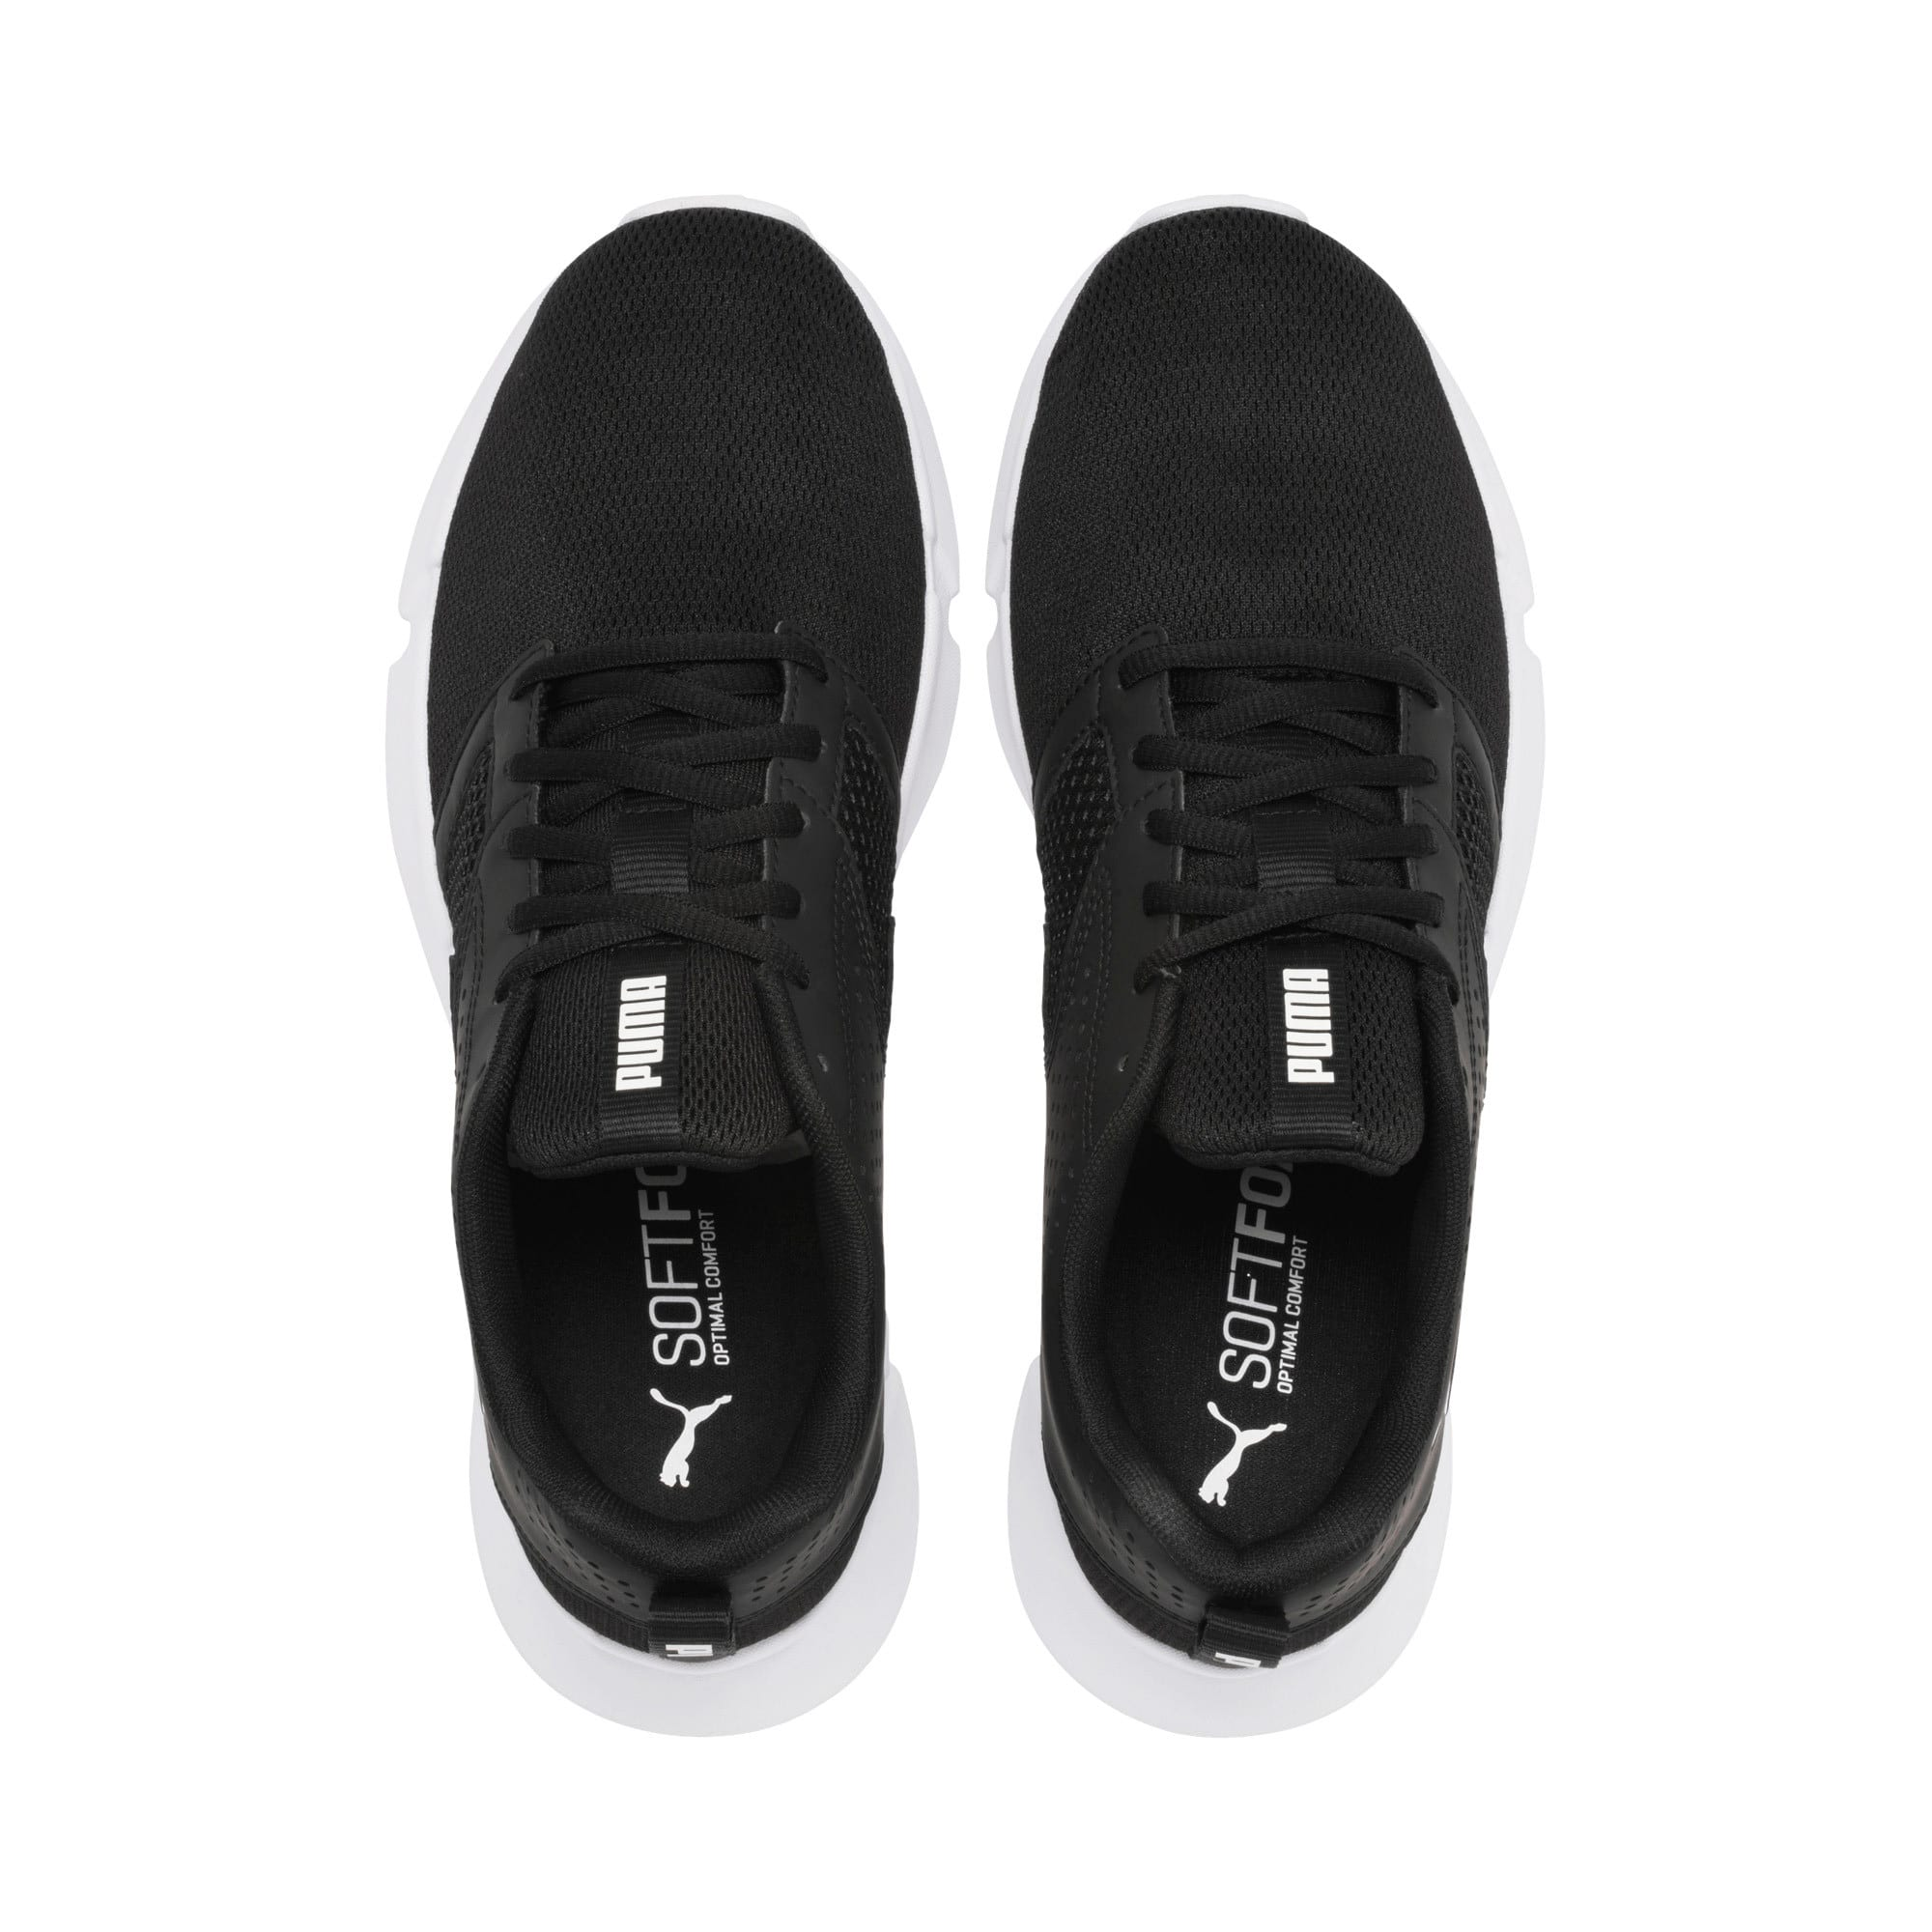 Thumbnail 7 of INTERFLEX Modern Sneakers, Puma Black-Puma White, medium